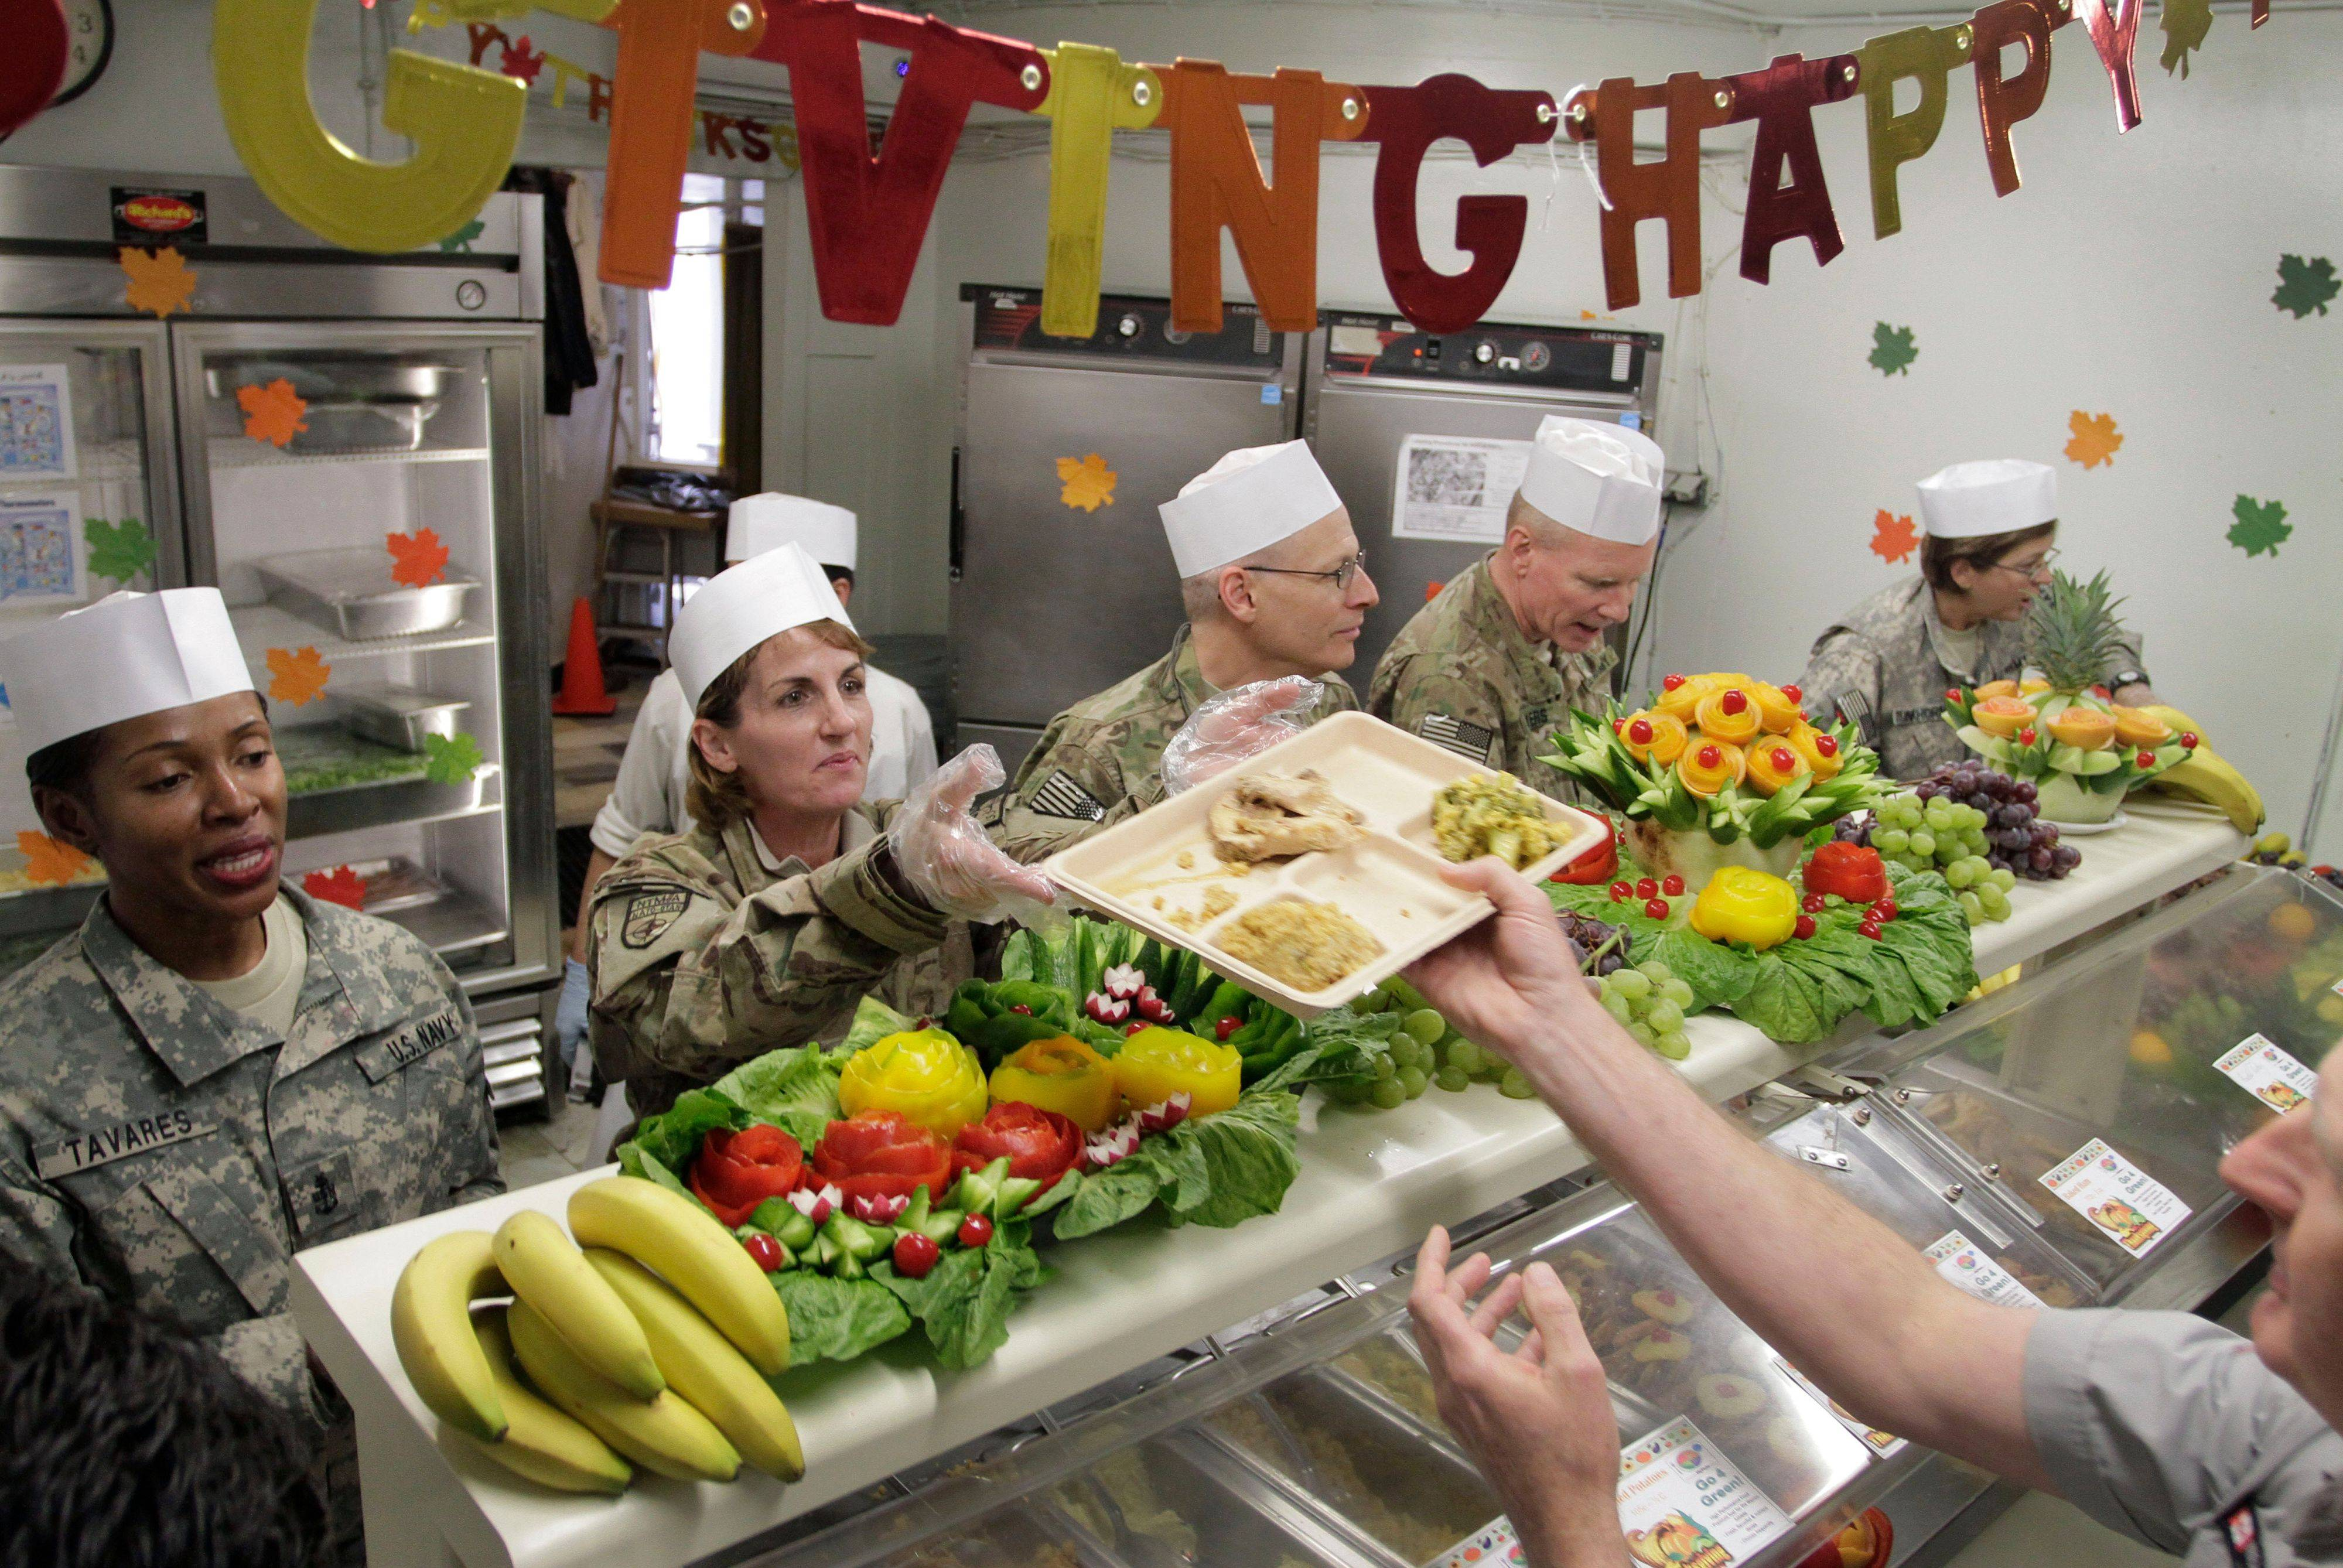 U.S. soldiers, left, distribute meals to comrades to mark Thanksgiving Day at the U.S. base Camp Eggers in Kabul, Afghanistan, Thursday, Nov. 24, 2011.